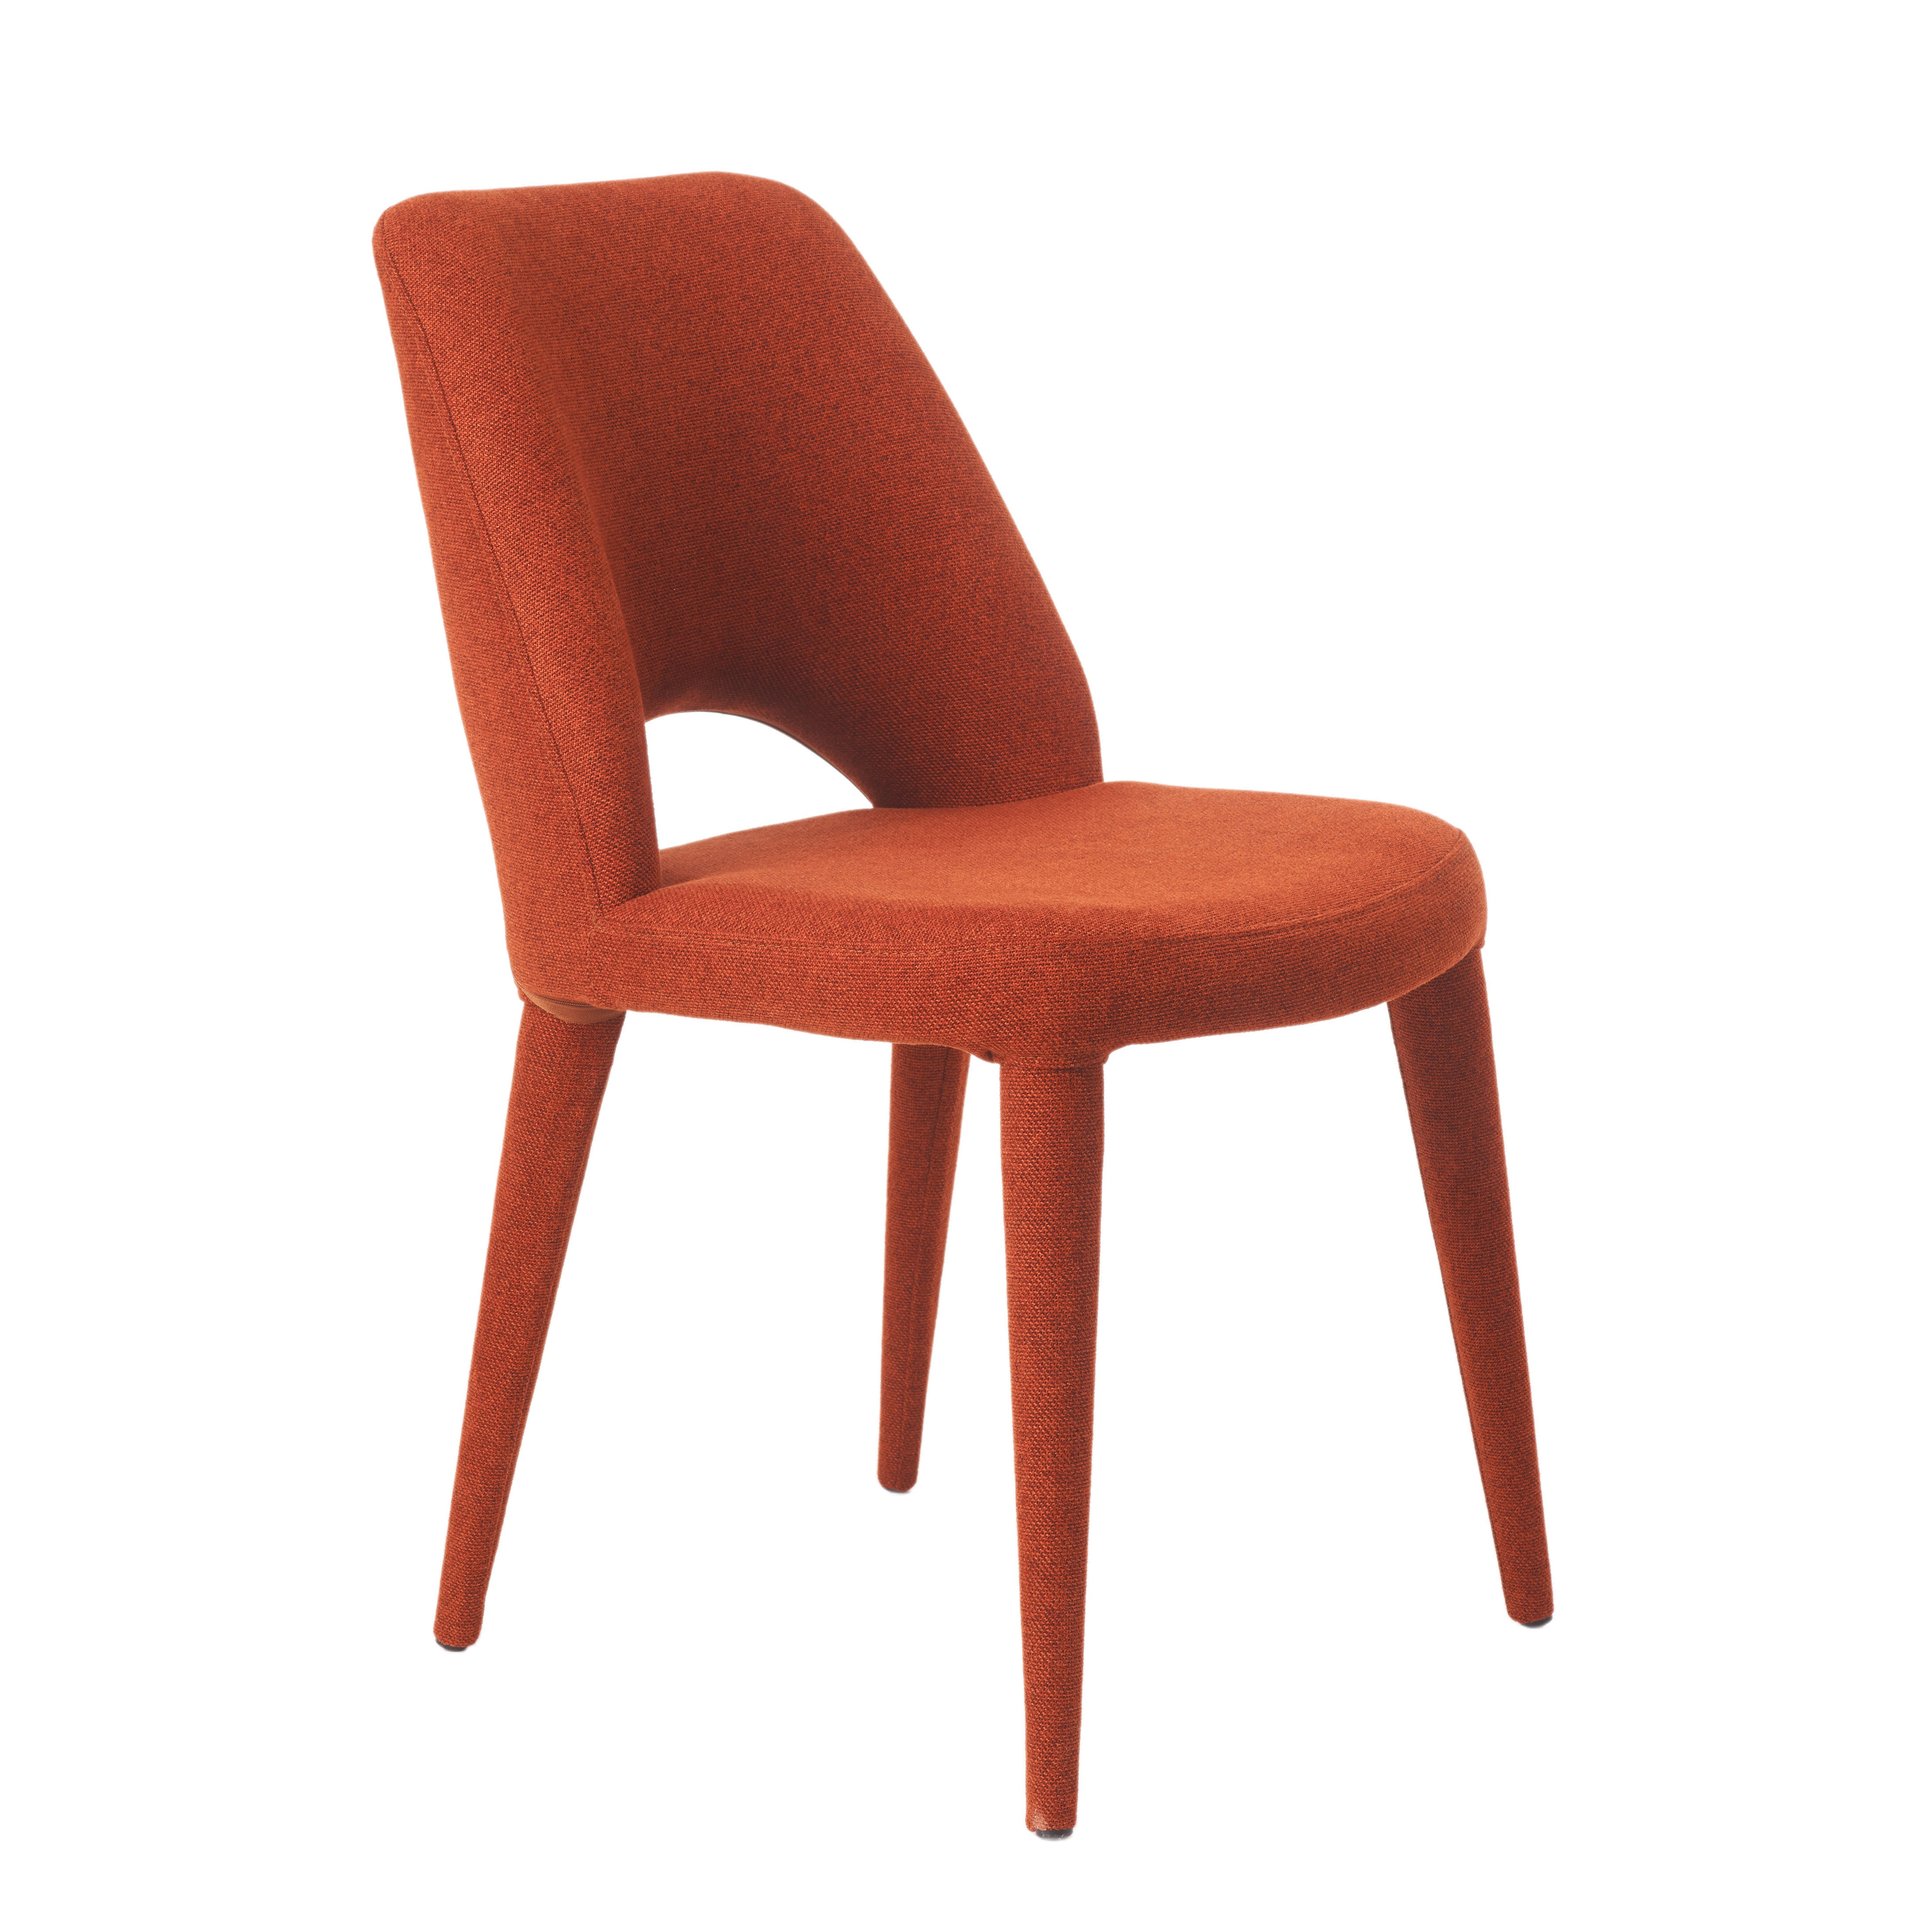 Furniture - Chairs - Holy Padded chair - / Fabric by Pols Potten - Rust red - Foam, Metal, Polyester fabric